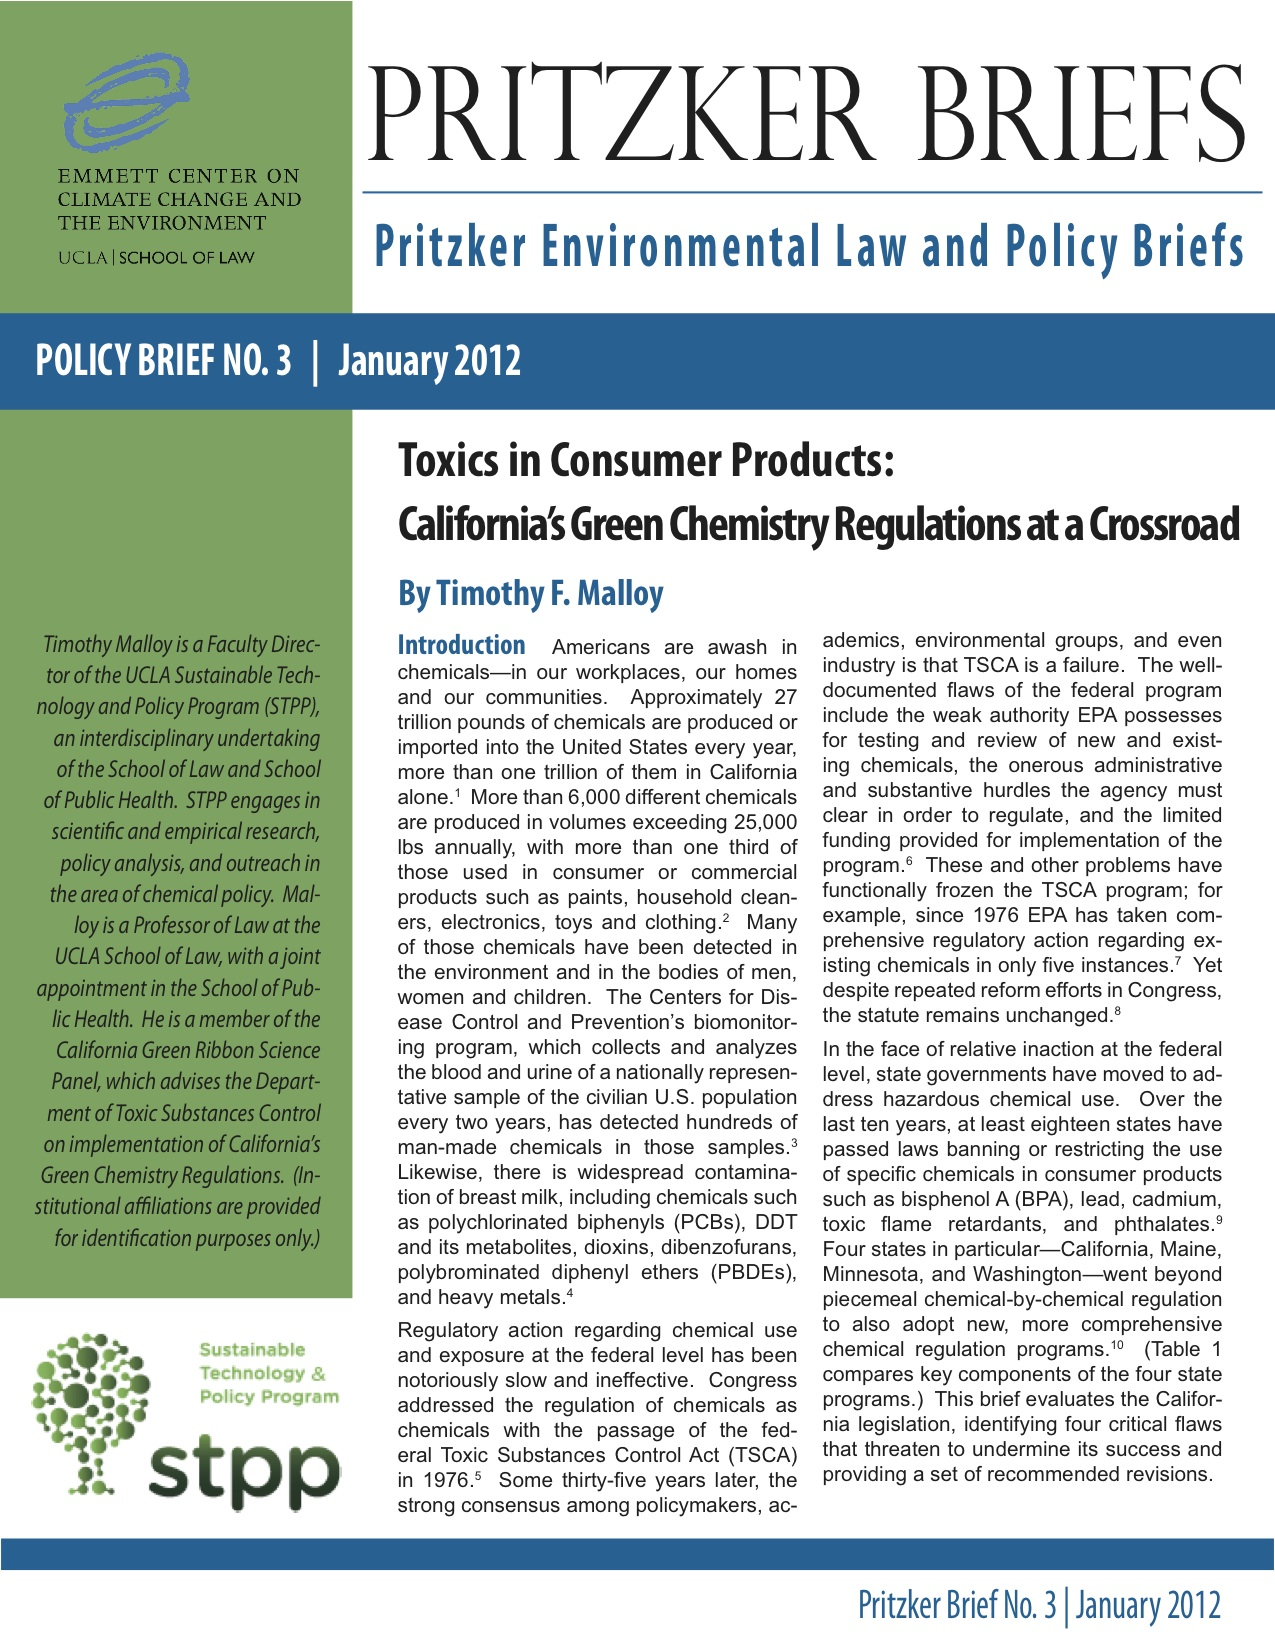 Pritzker Cover - Toxics in Consumer Products